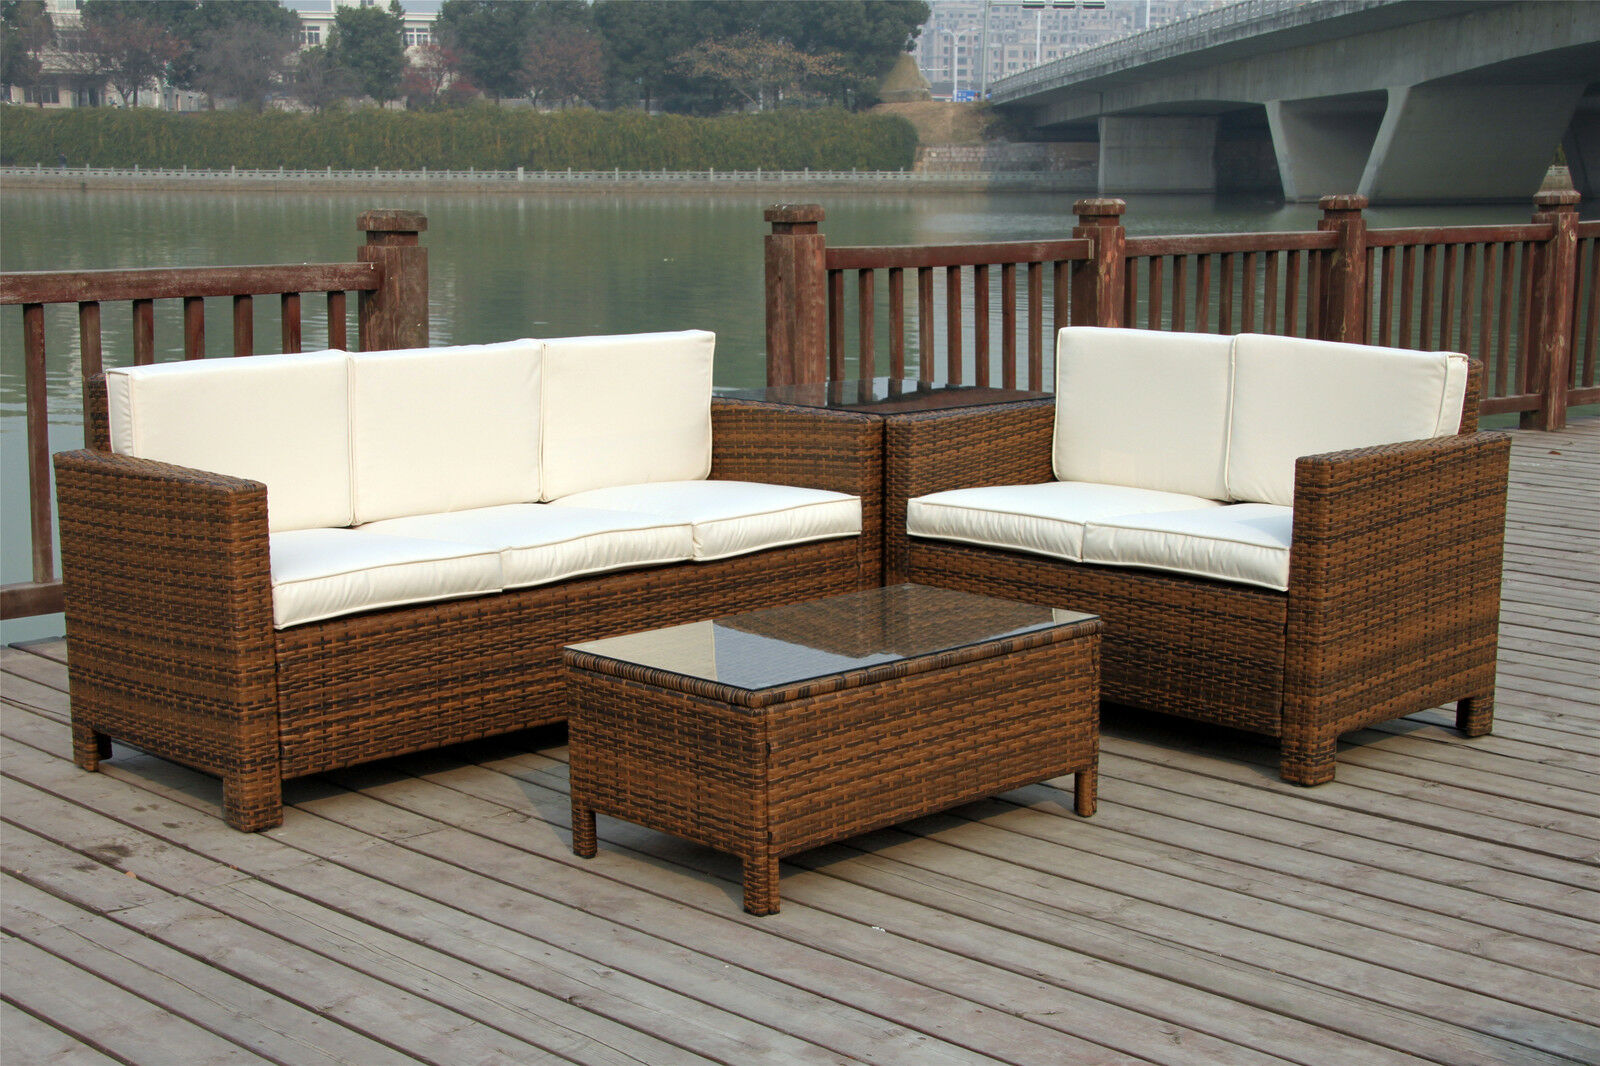 Rattan Outdoor Chairs Rattan Garden Outdoor Wicker Patio Furniture Conservatory